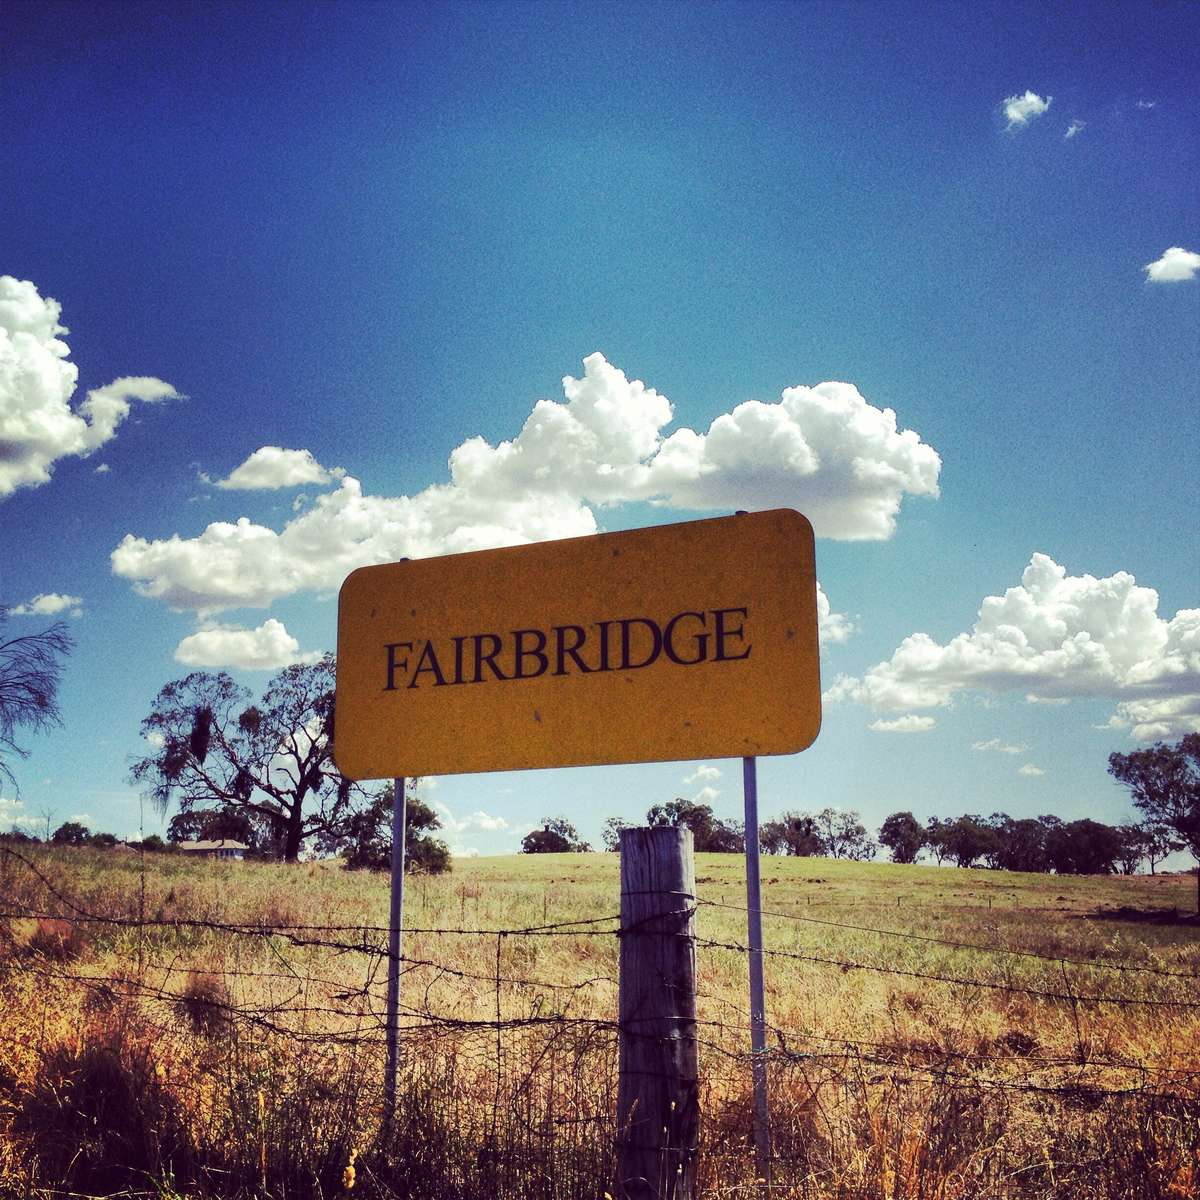 Fairbridge Farm, Molong NSW. ANMM photo 2013